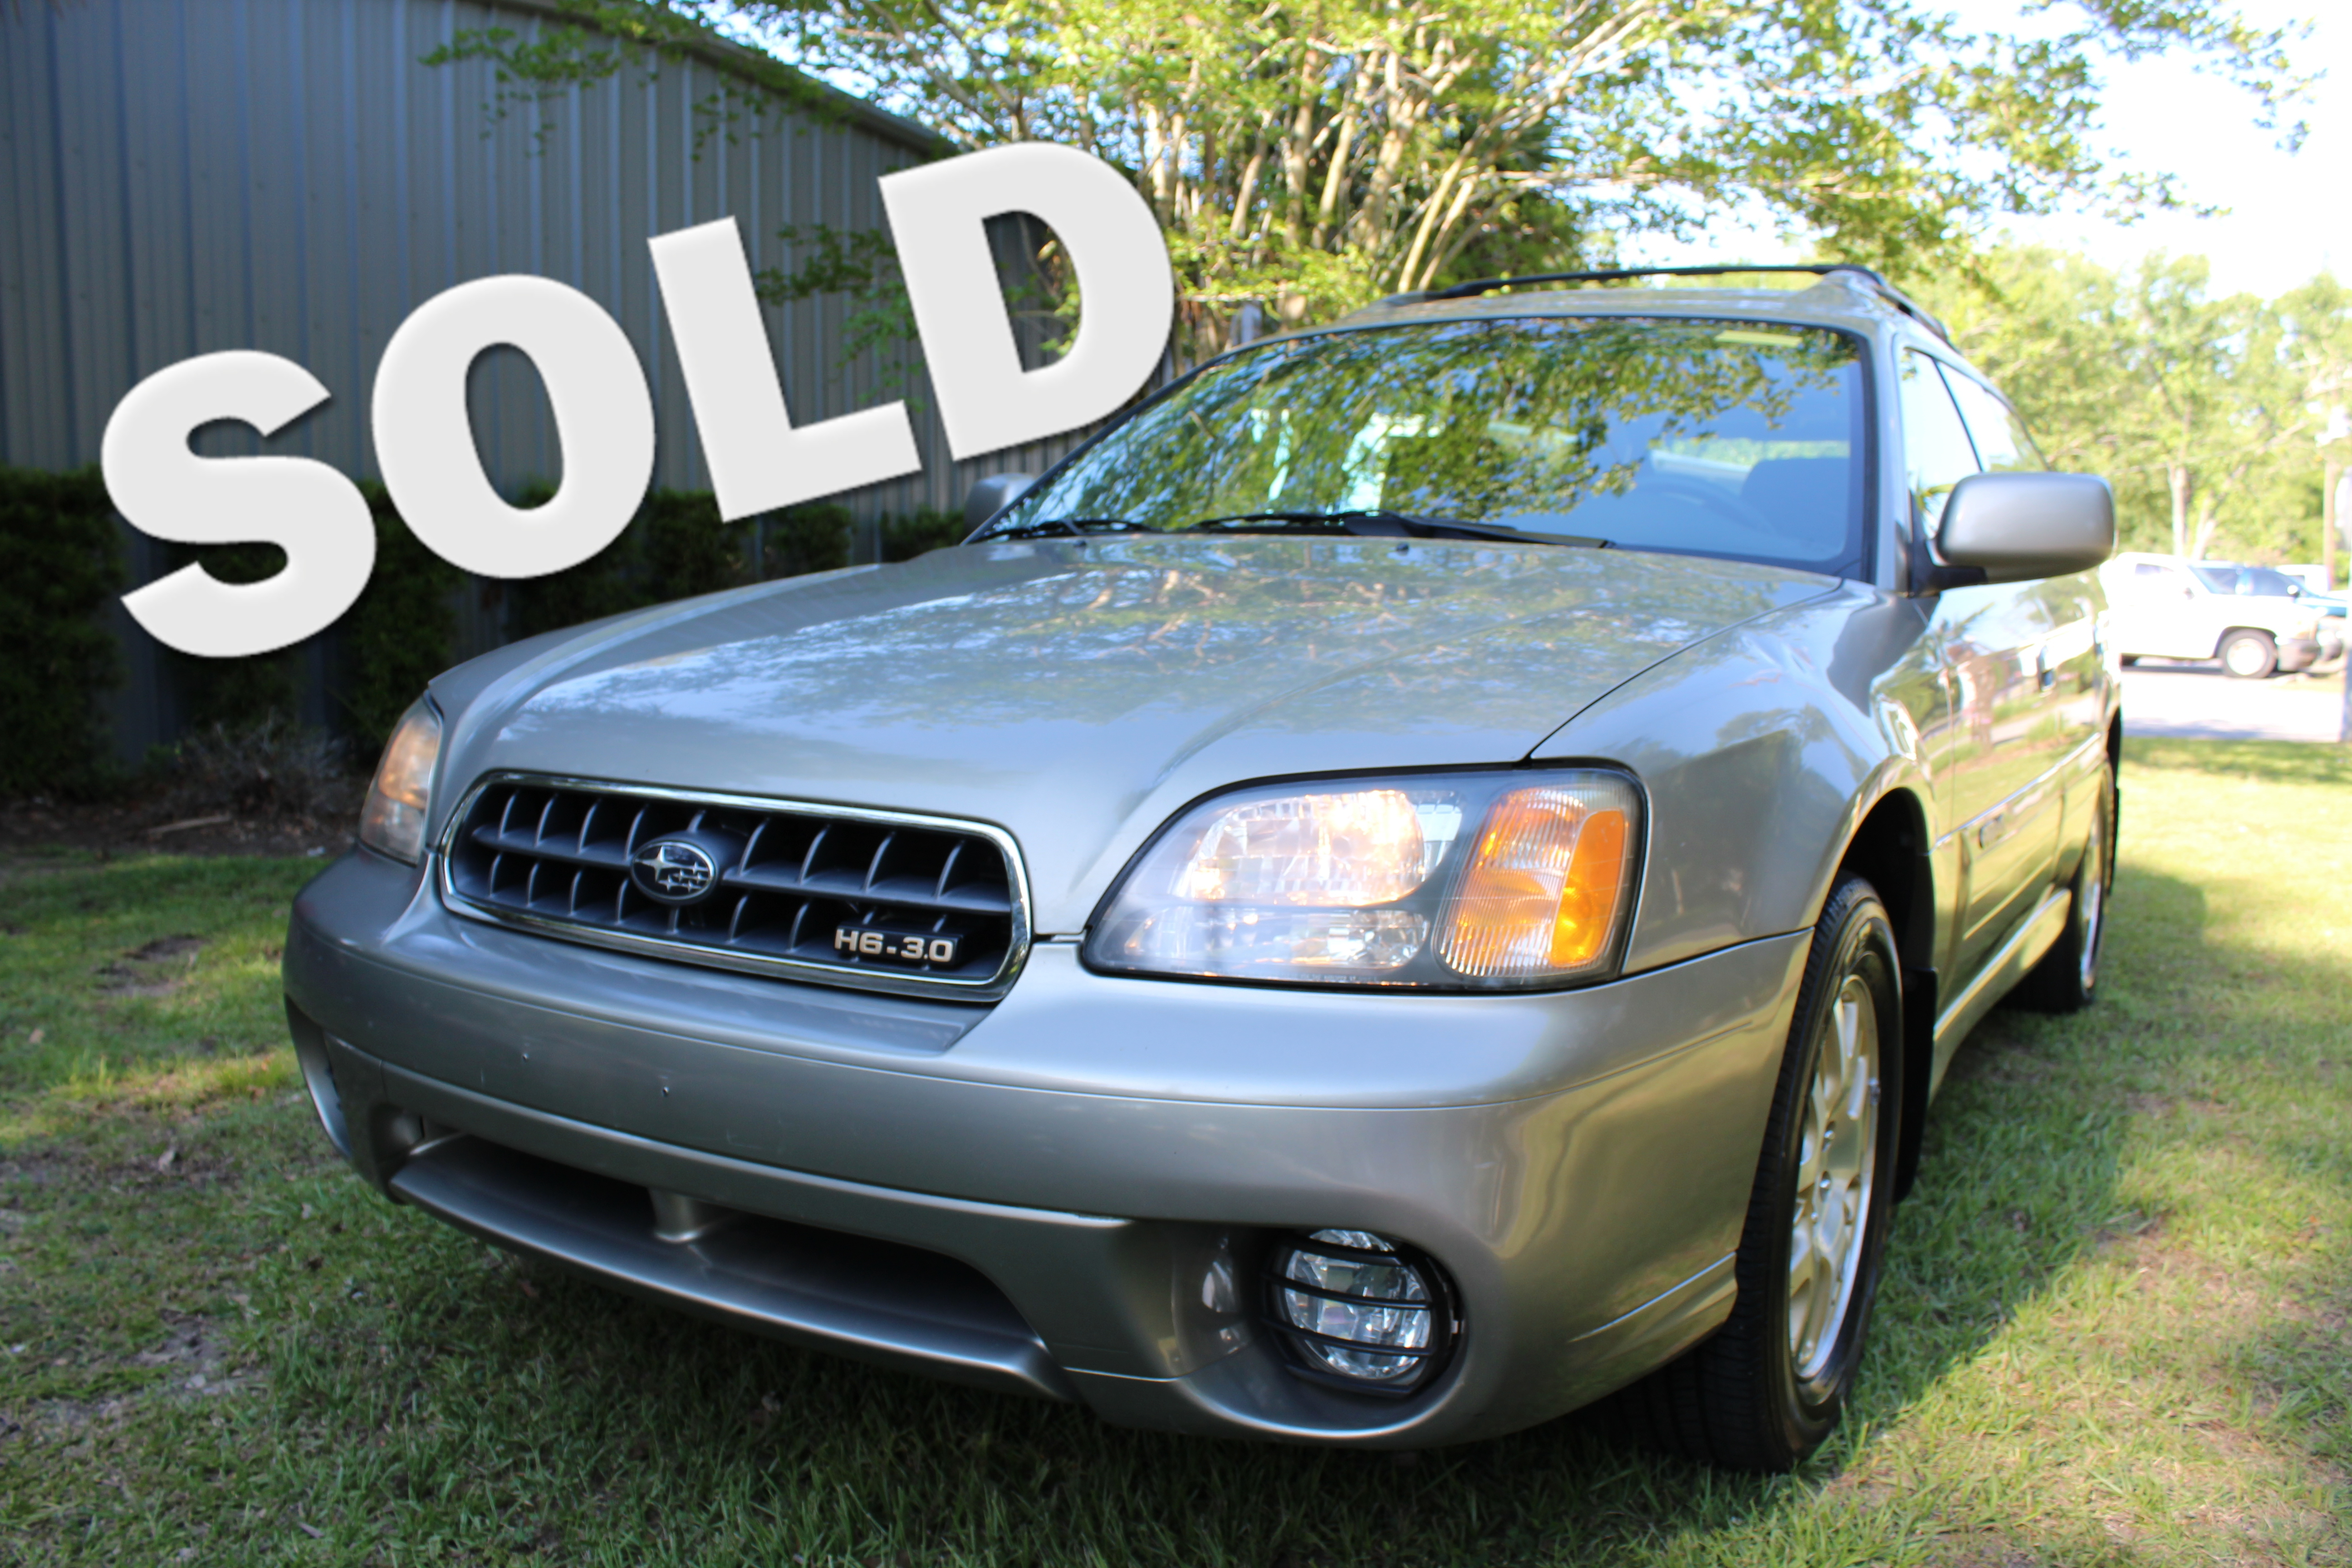 2003 Subaru Outback H6 in Charleston SC